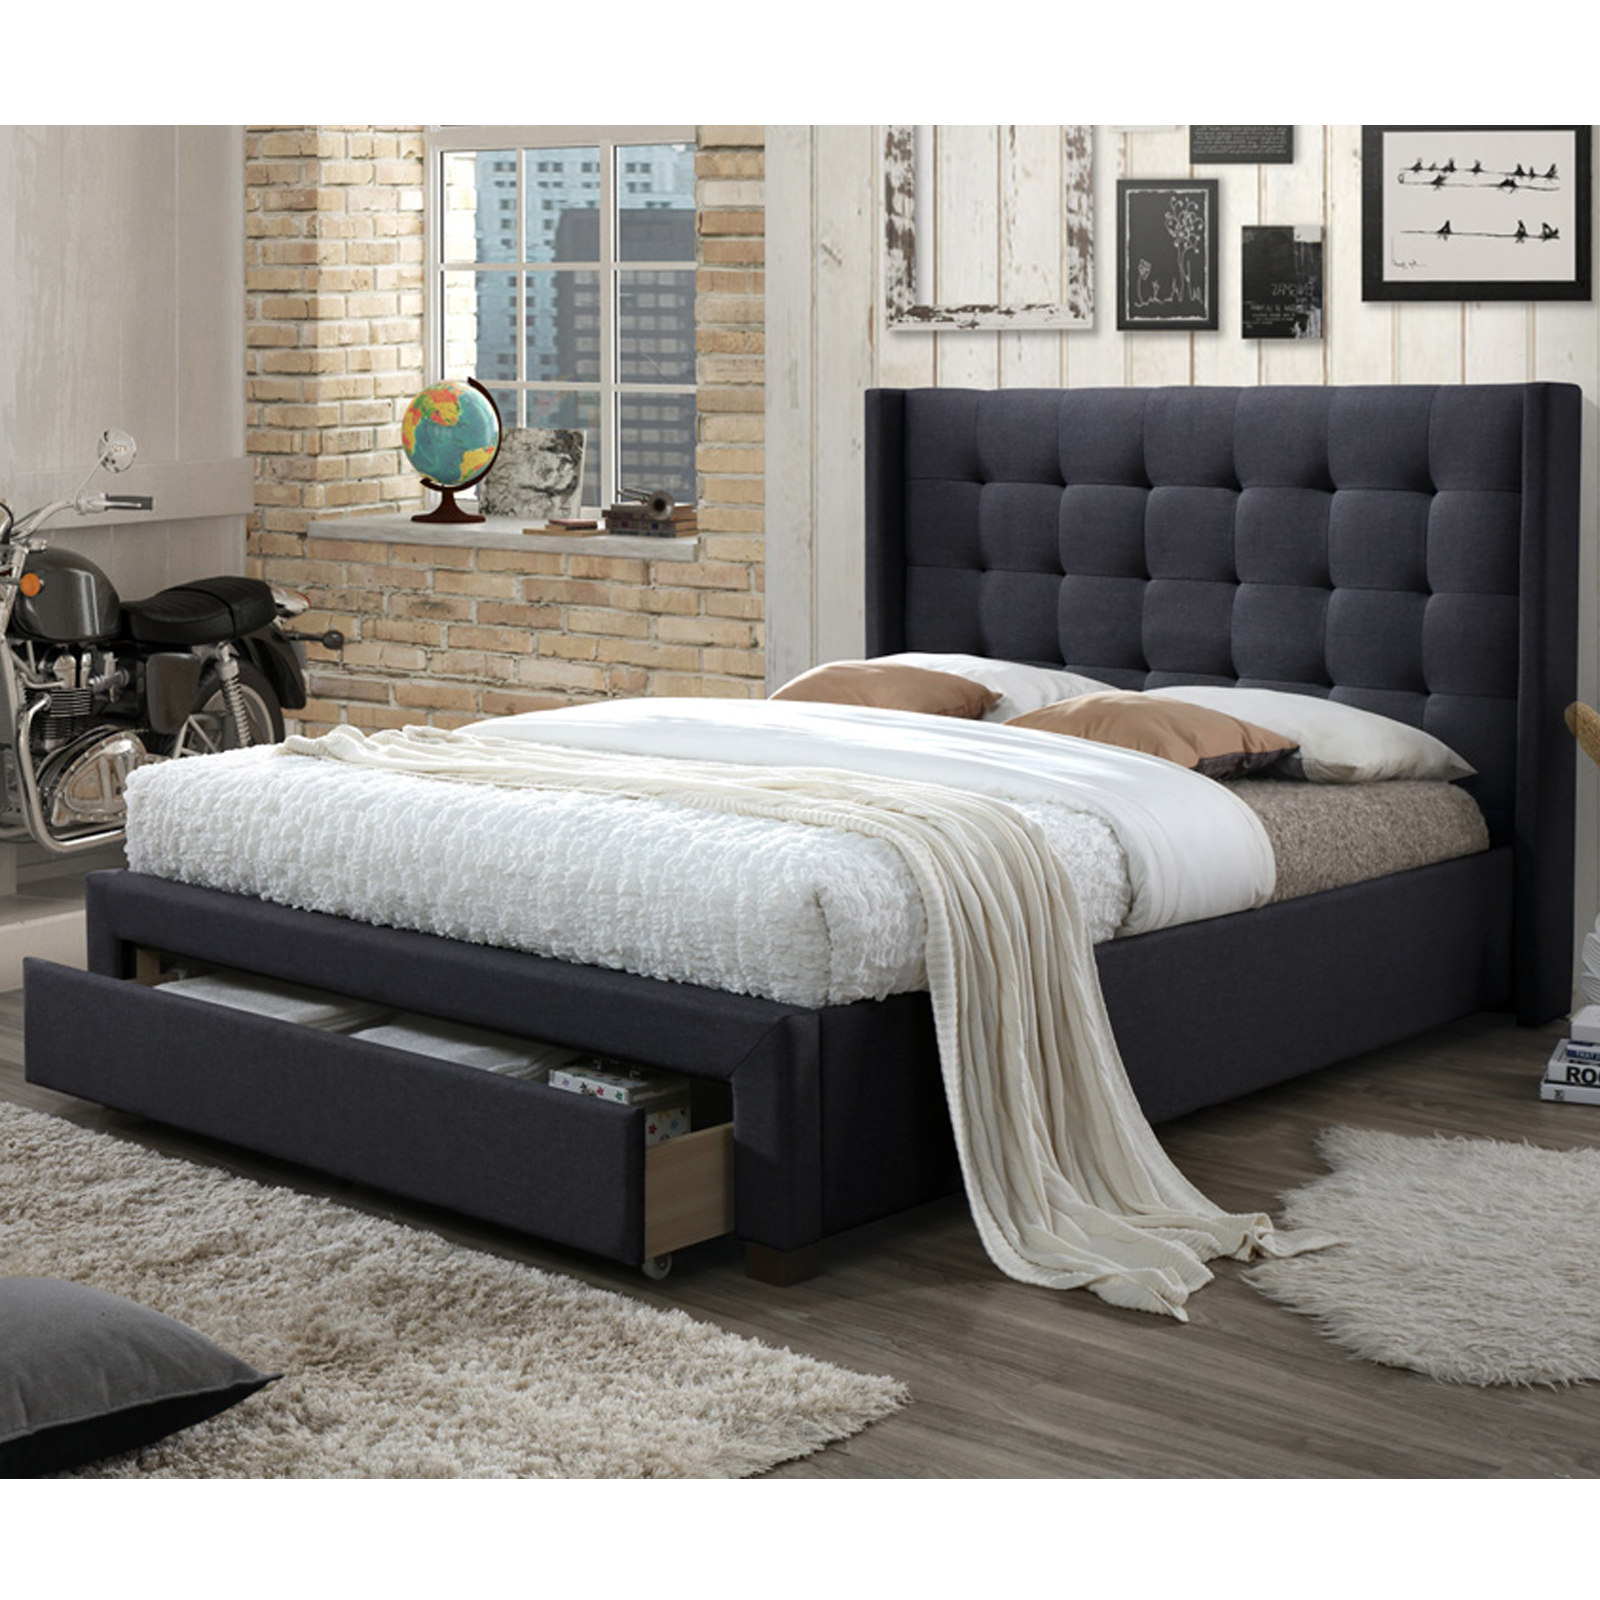 Luxury Queen Size Fabric Bed With Buttons & Studs